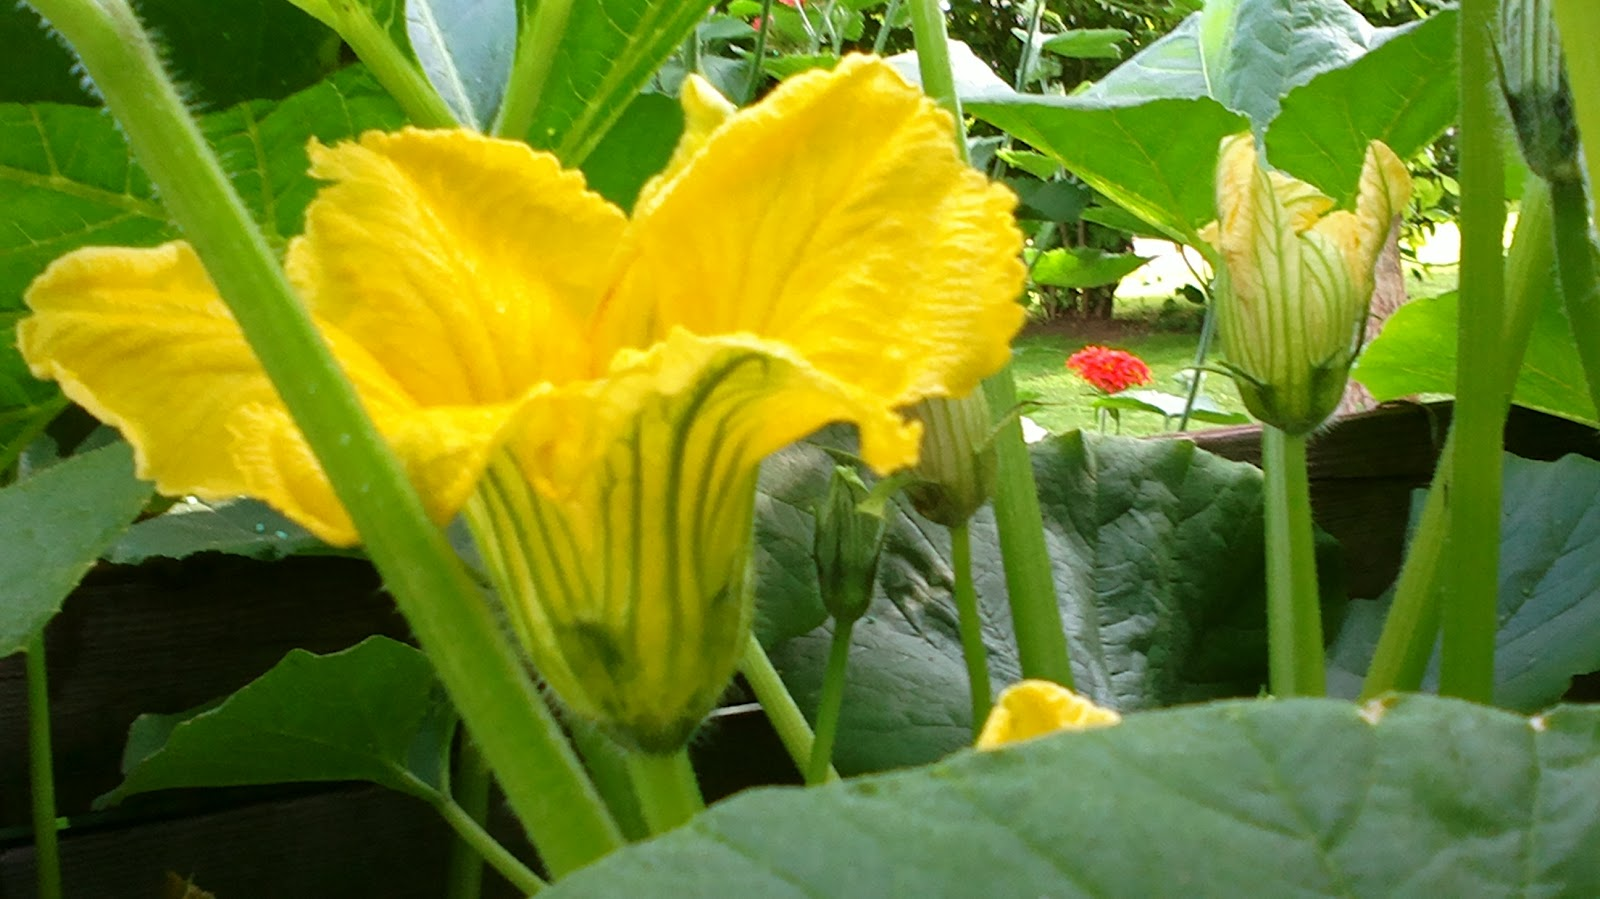 Kurpitsa kukkii ja kasvaa – A pumpkin is blooming and growing